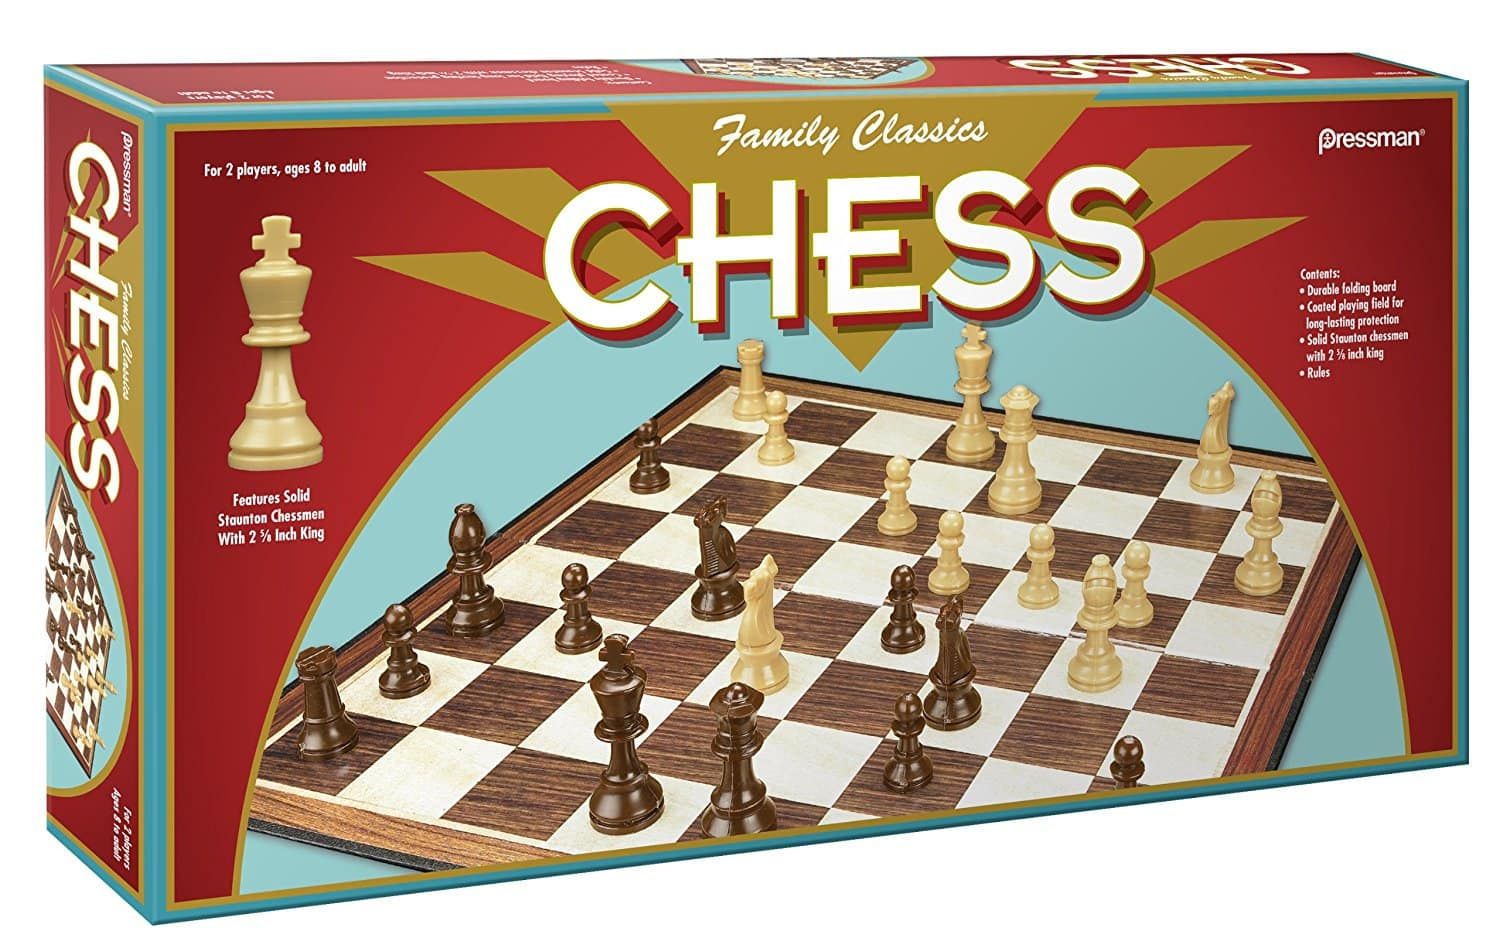 Family Classic Chess - $9.99